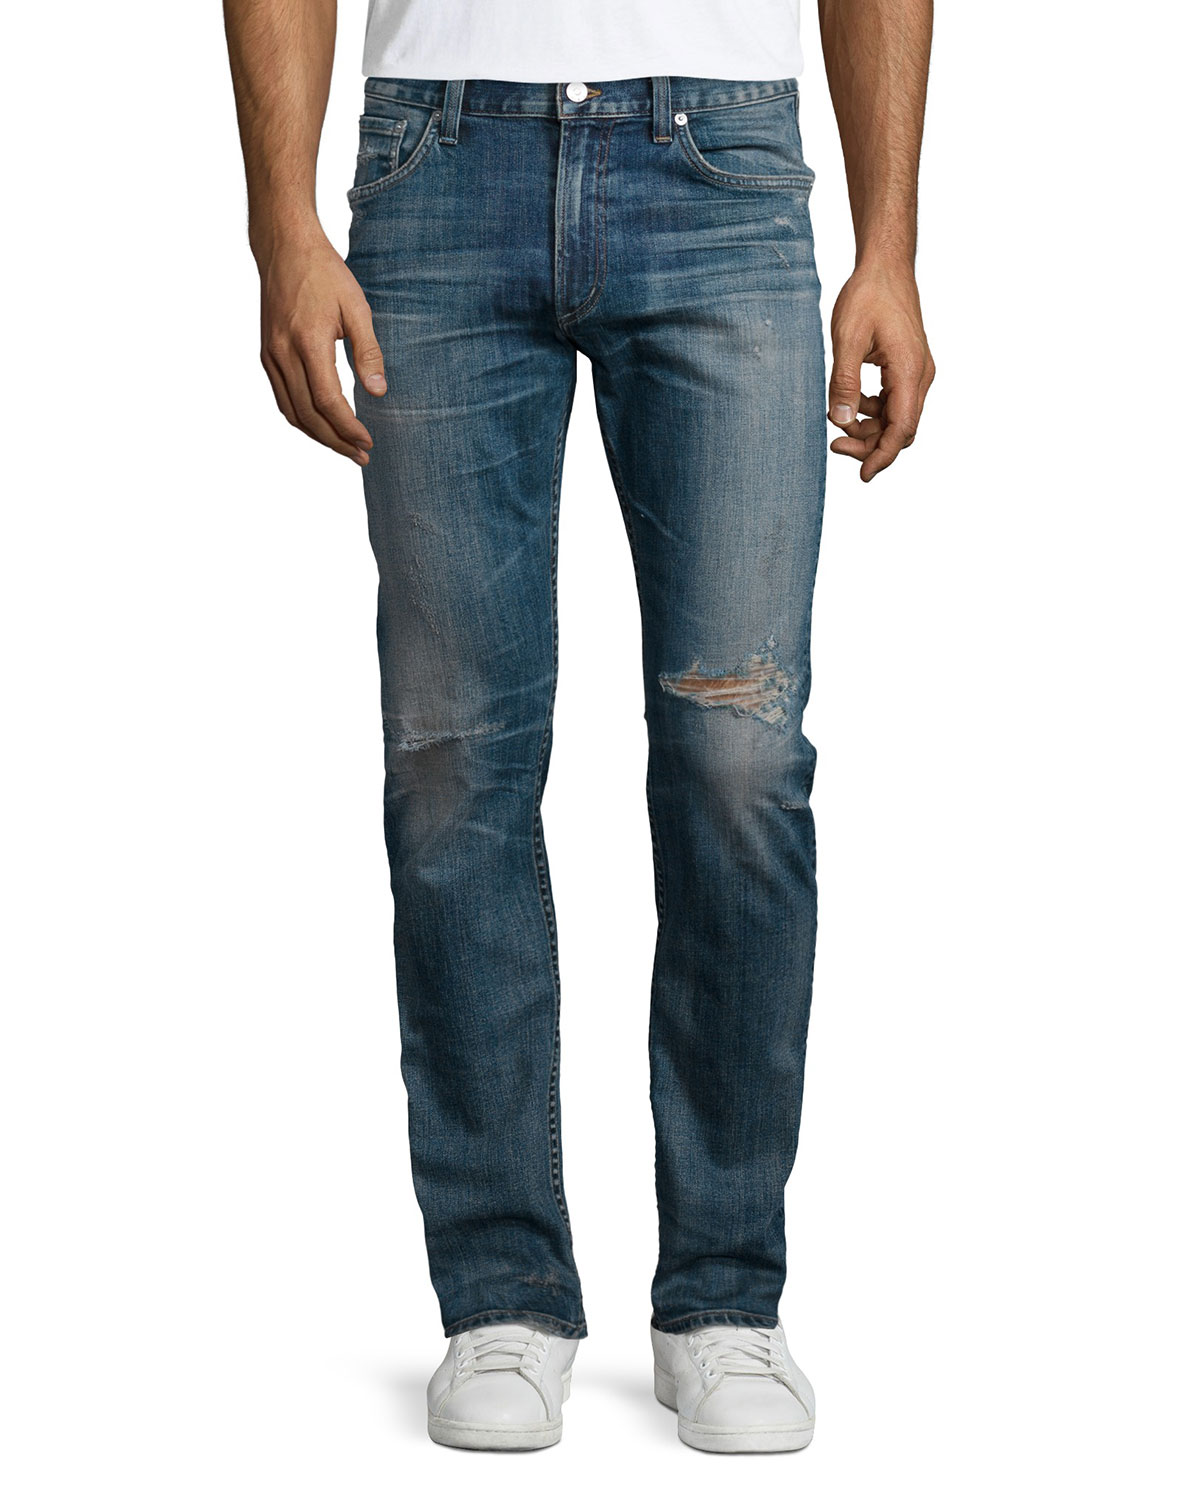 Jeans Bowery grey-blue Citizens Of Humanity 43Qprs